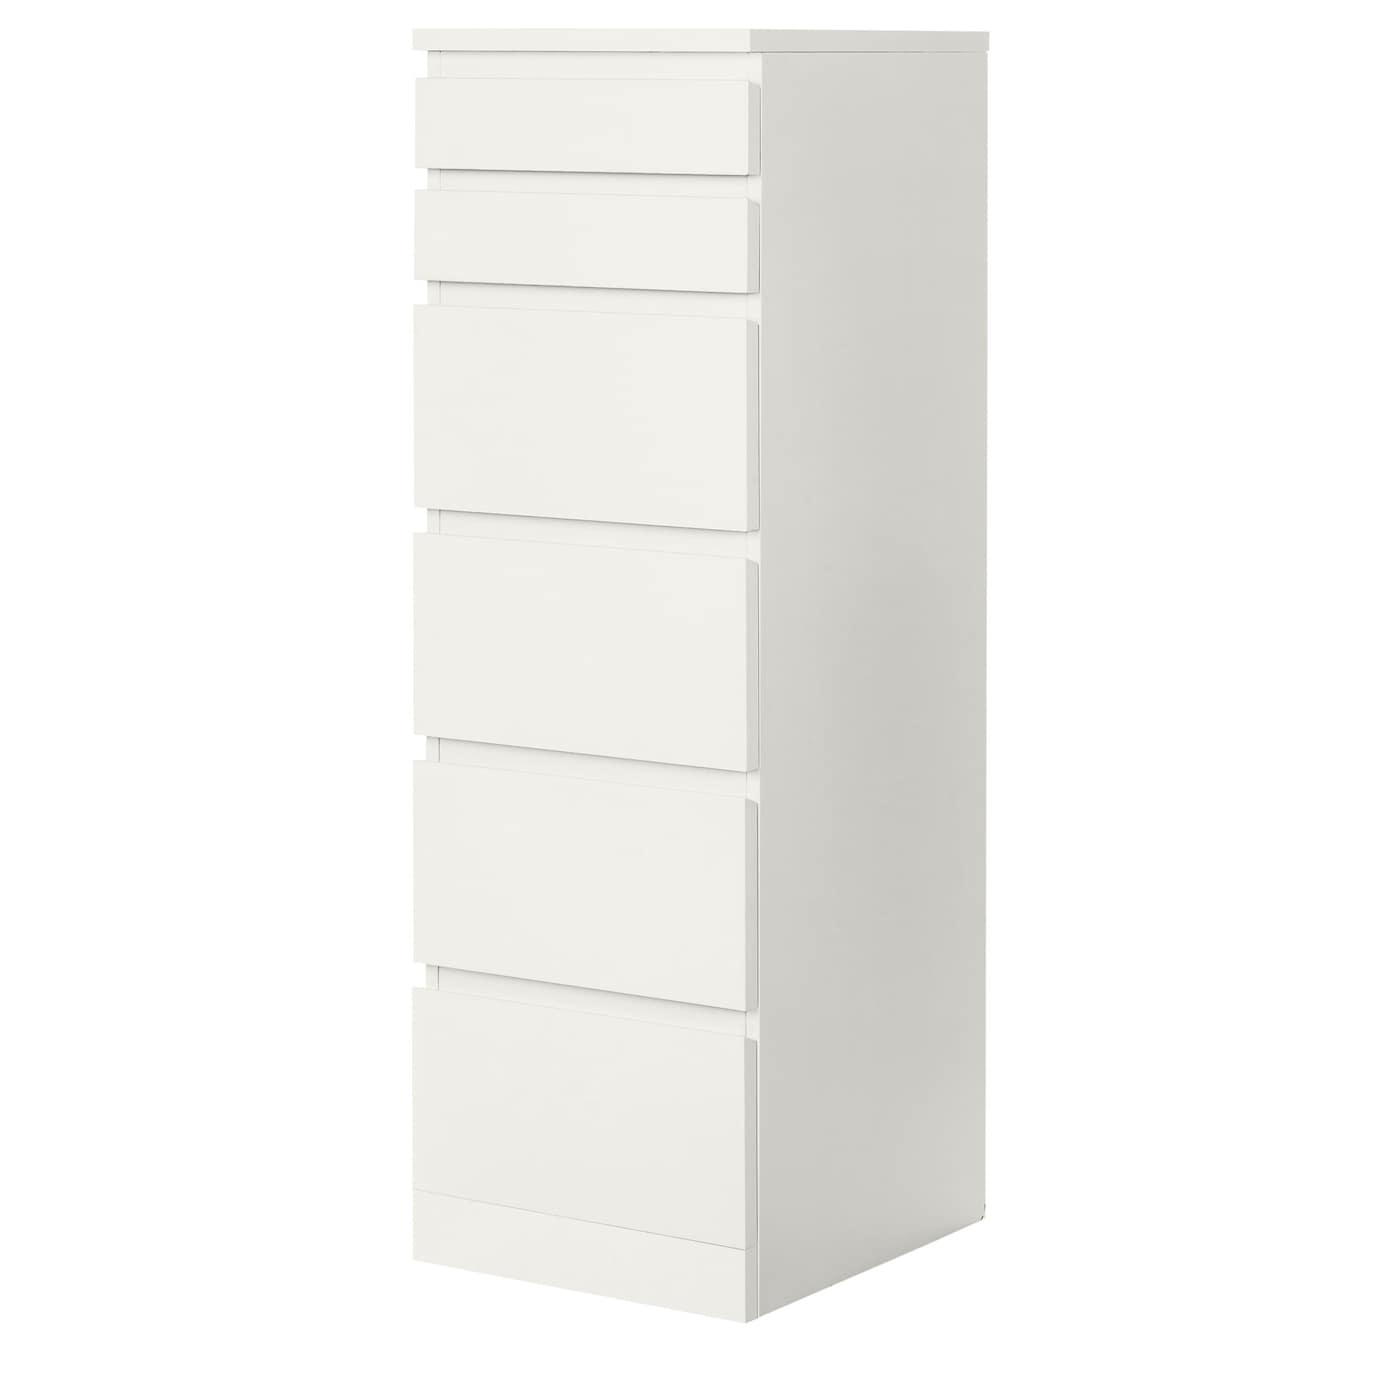 Malm Chest Of 6 Drawers White Mirror